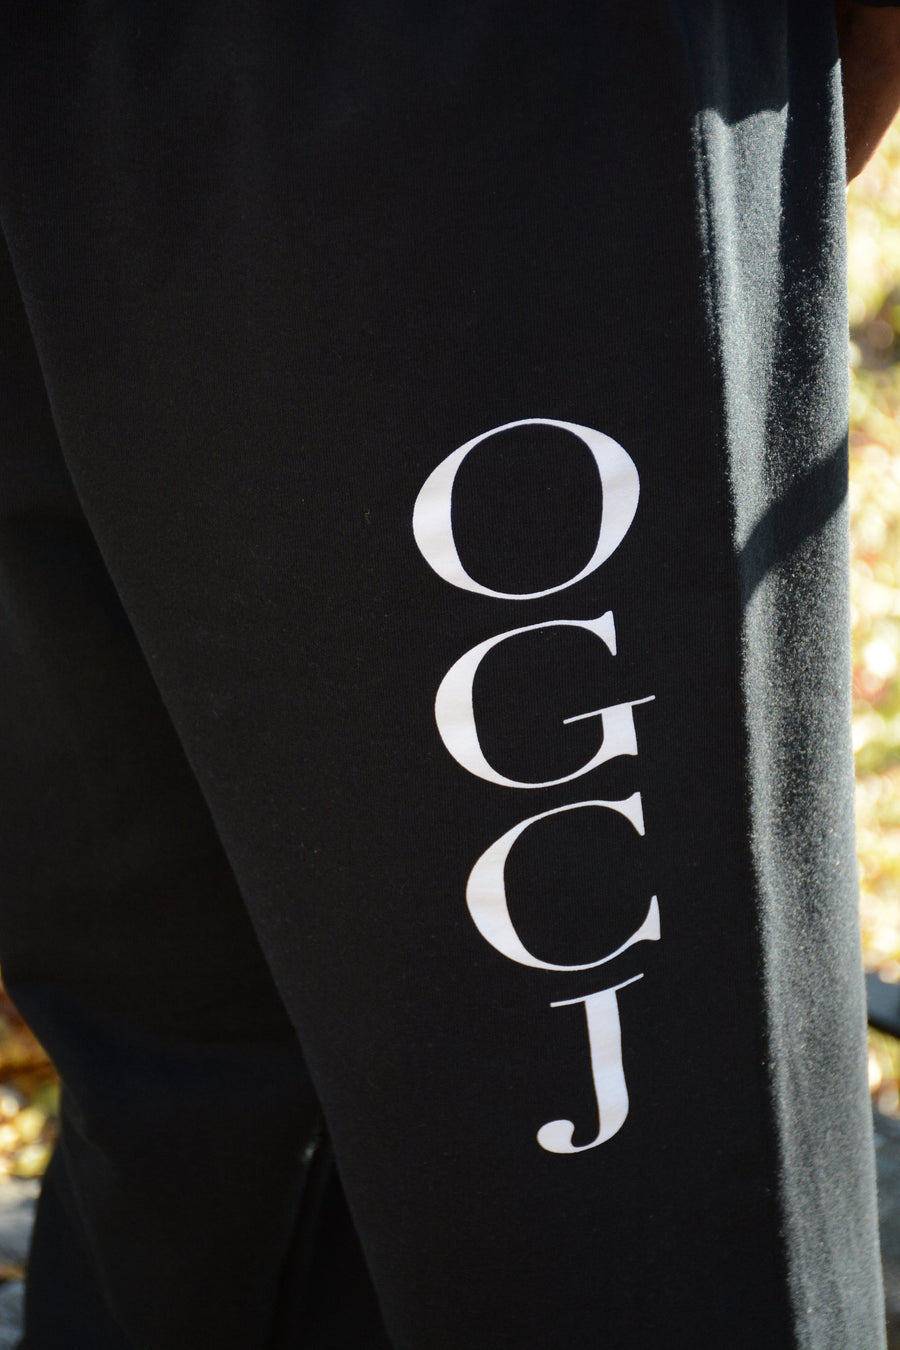 Unisex Chill OGCJ Sweatpants